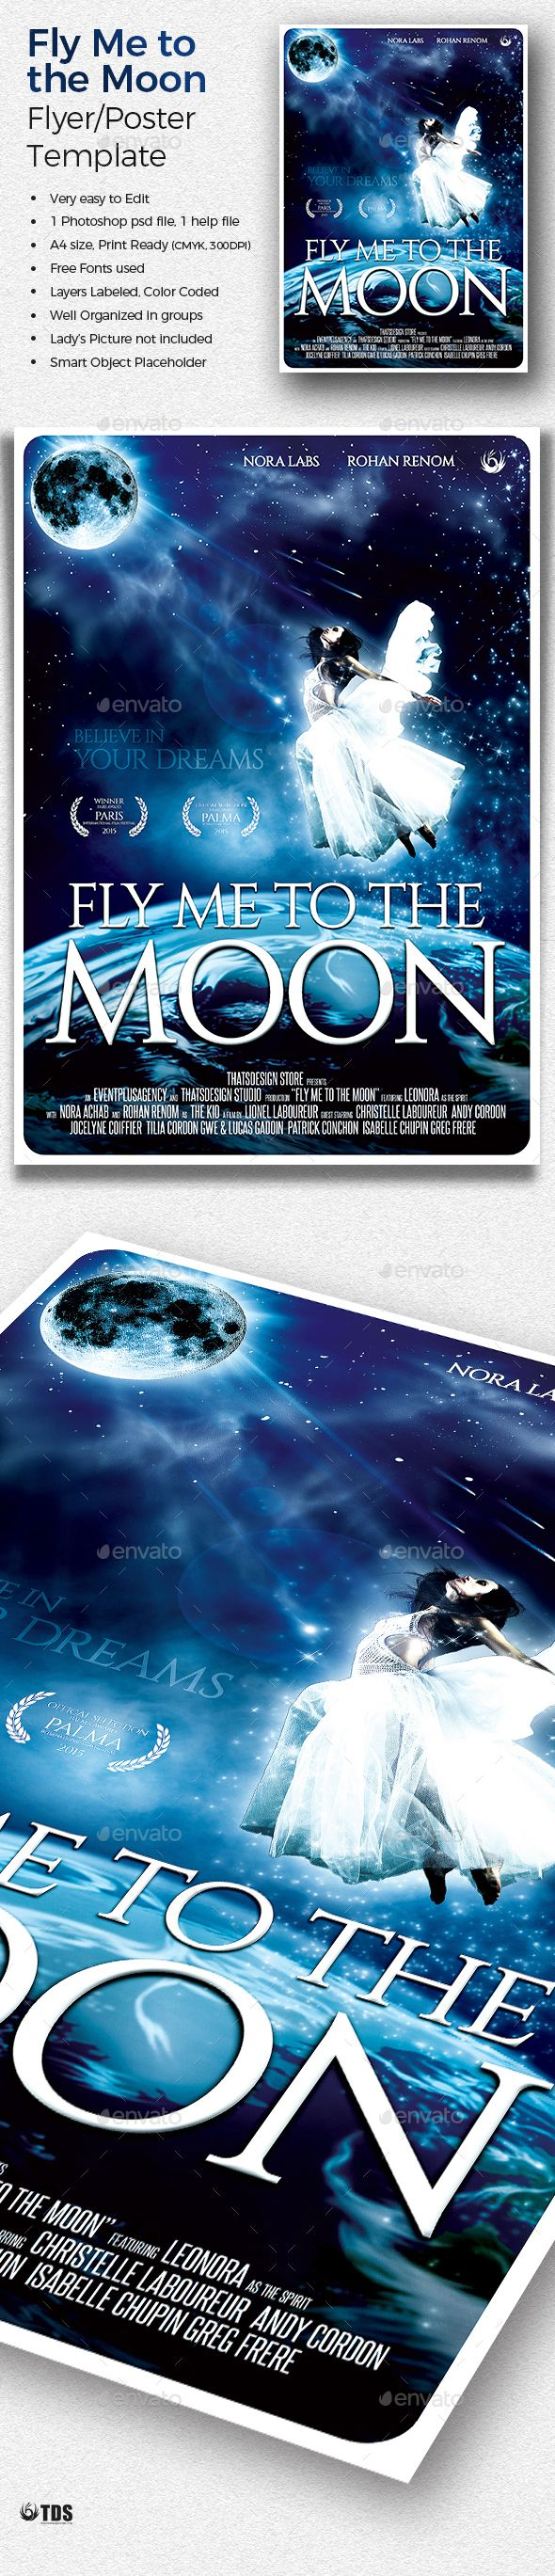 Fly Me to the Moon Movie Poster Template